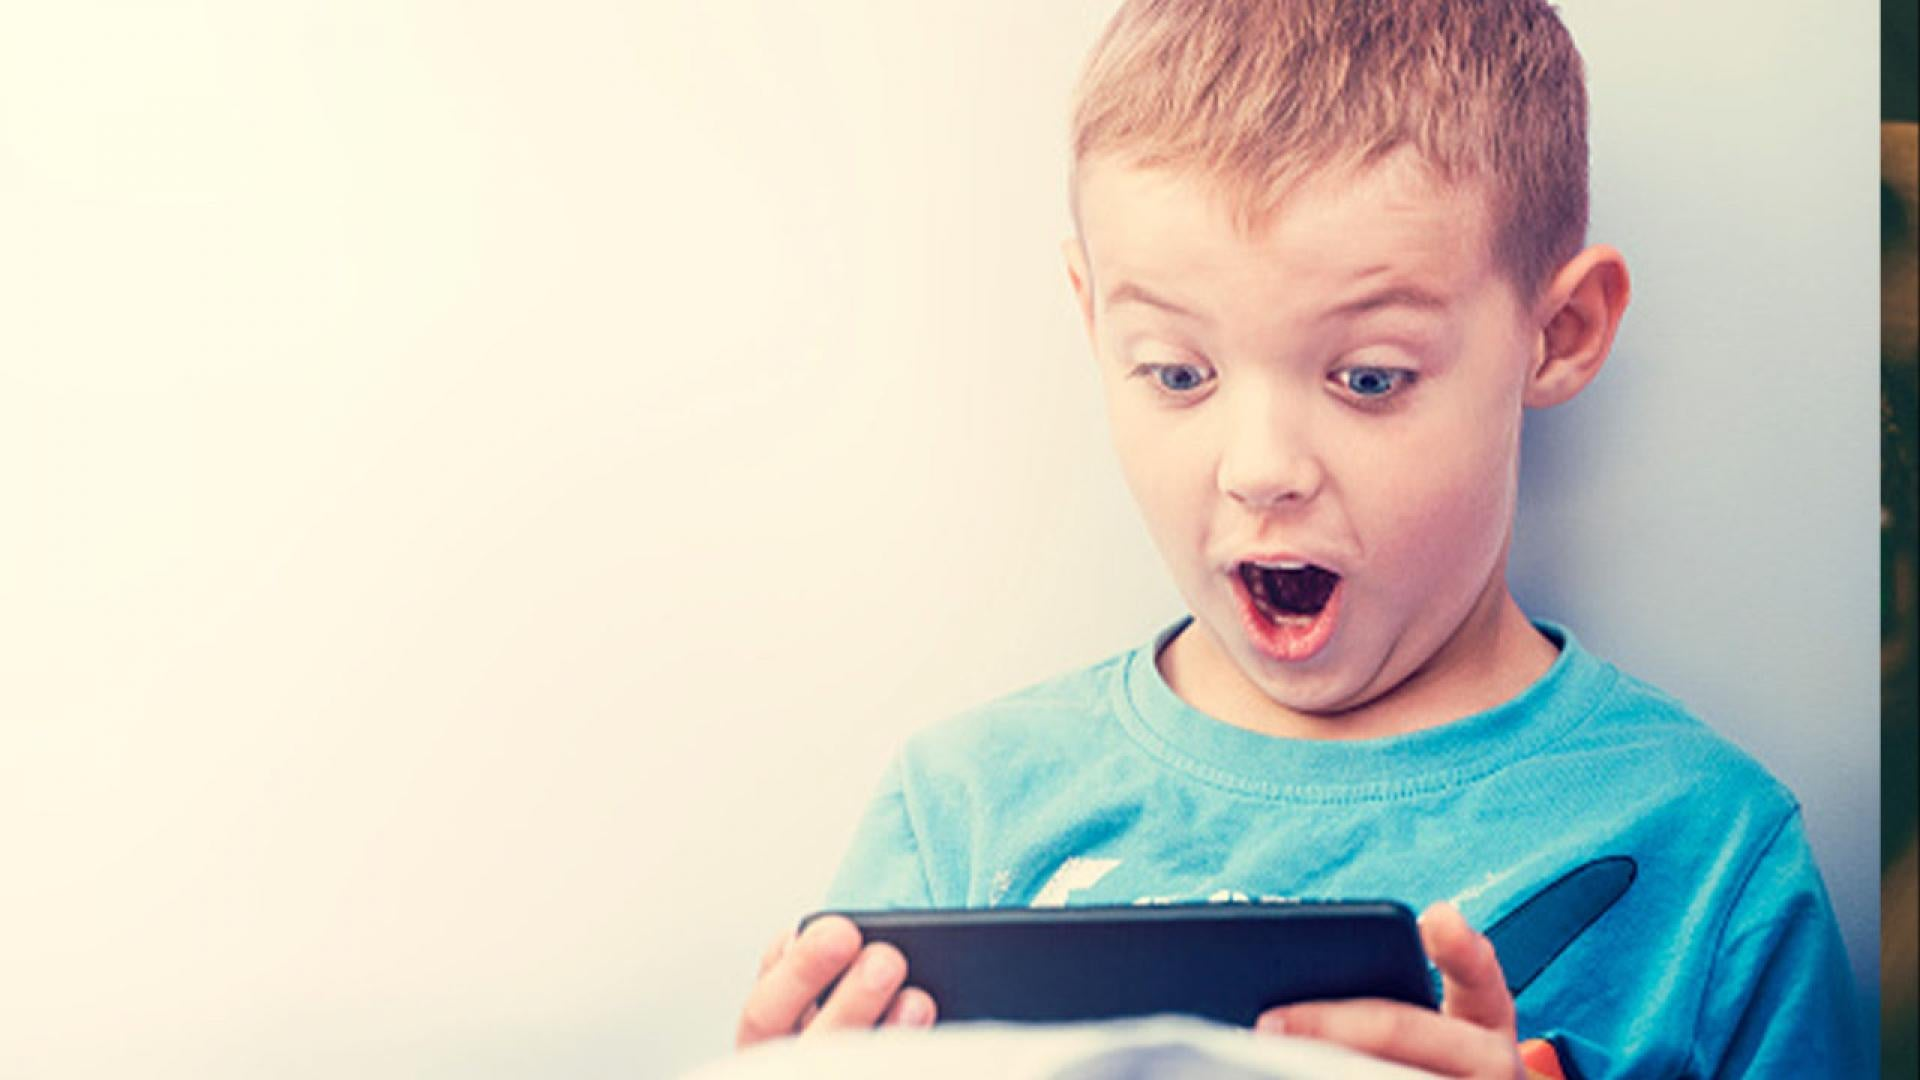 A stock photo of a young boy playing a video game on his ipad.